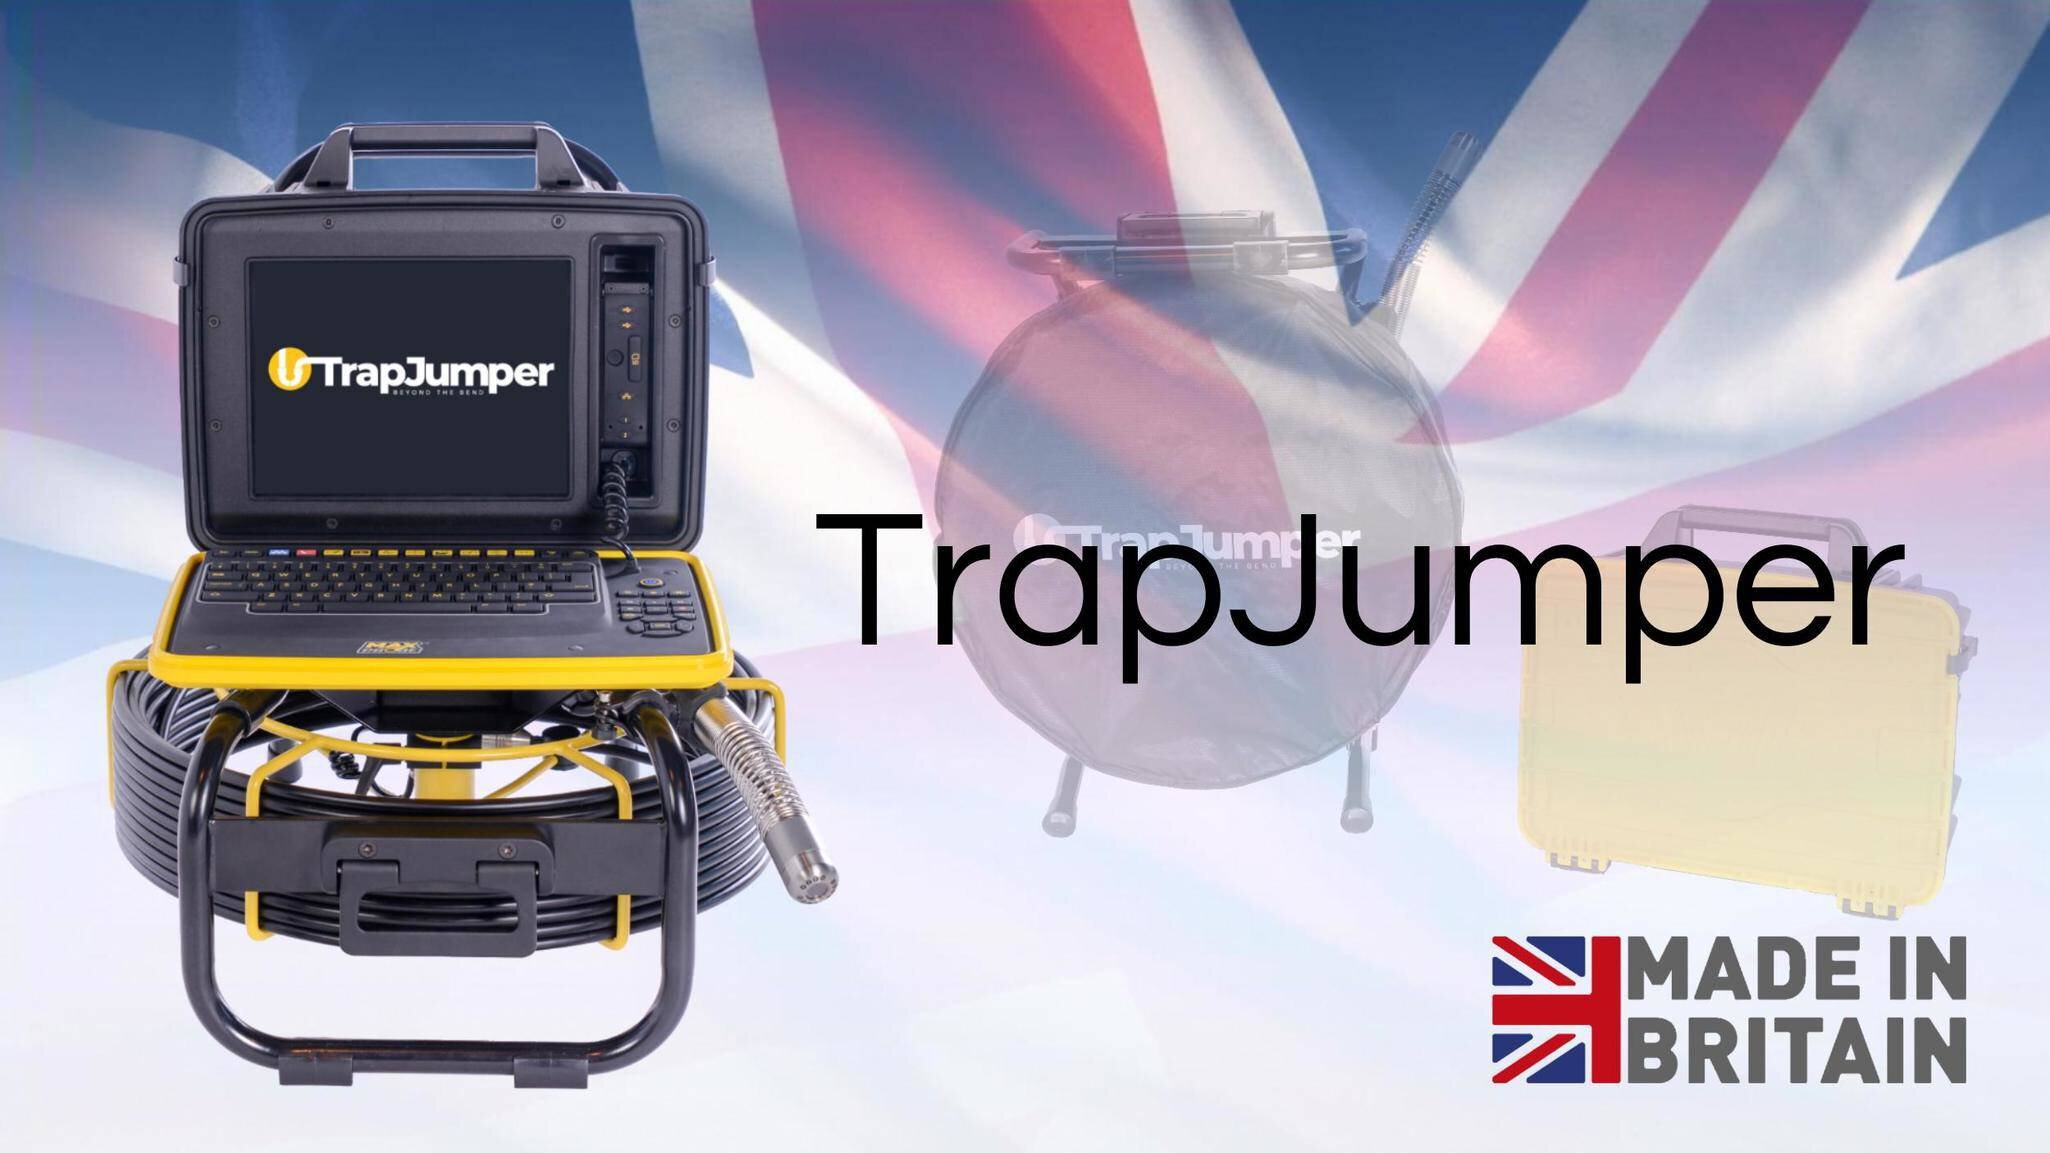 Gallery image 2 - The TrapJumper: * 40 metres * Flexible and portable * Built-in survey reporting software   - create PDF reports on site   - no subscription required * Self-levelling camera * Manufactured in the UK  See more here: https://www.scanprobe.com/product/trapjumper/